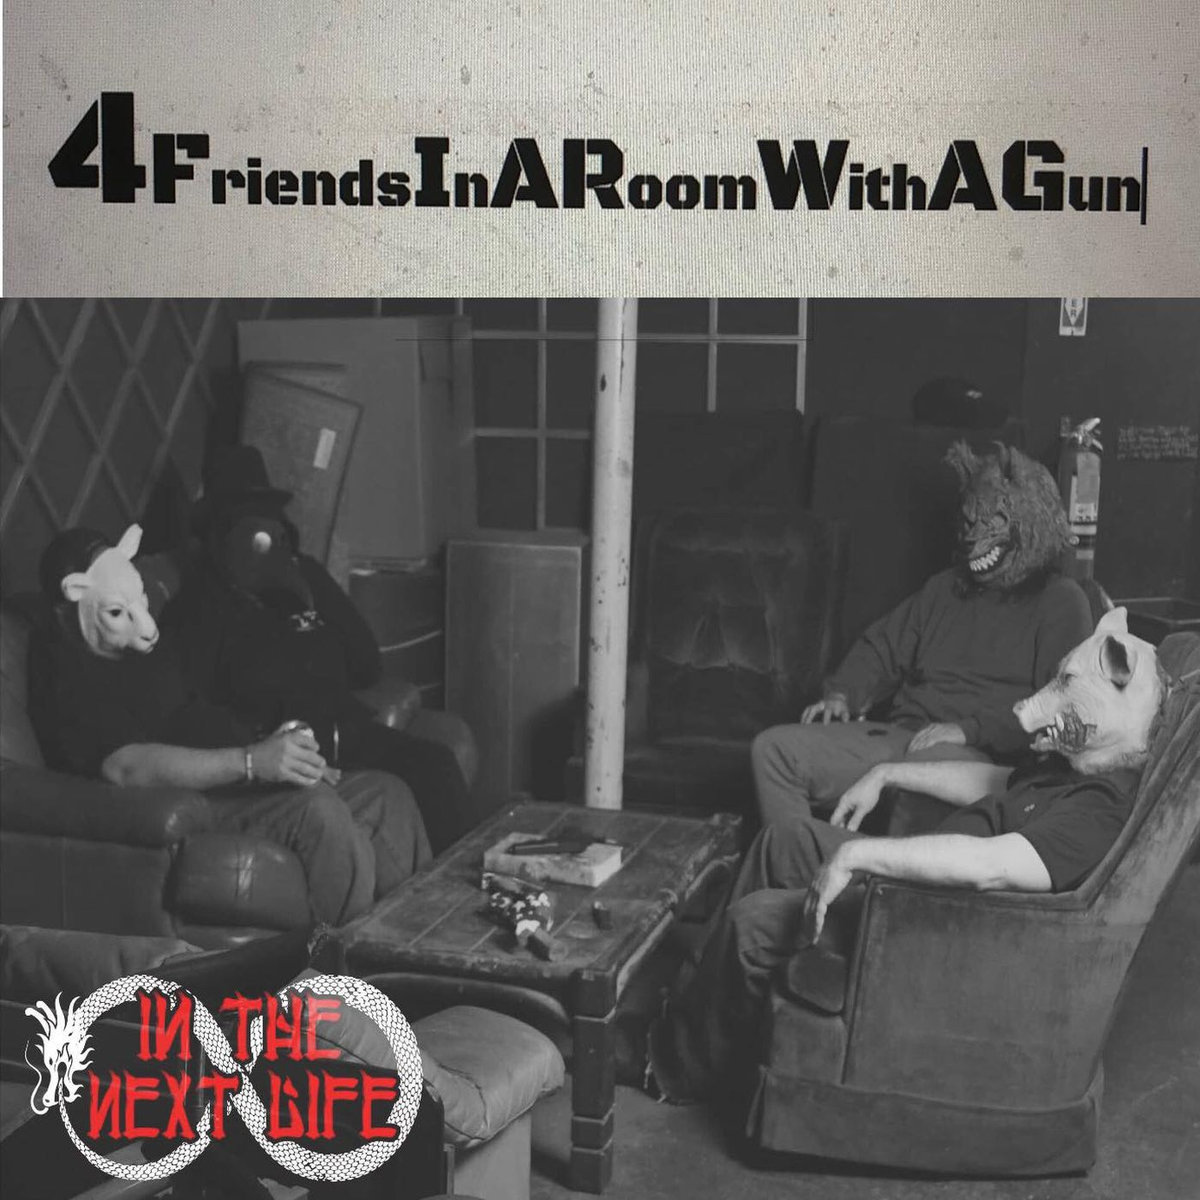 In The Next Life 4FriendsInARoomWithAgun EP Cover